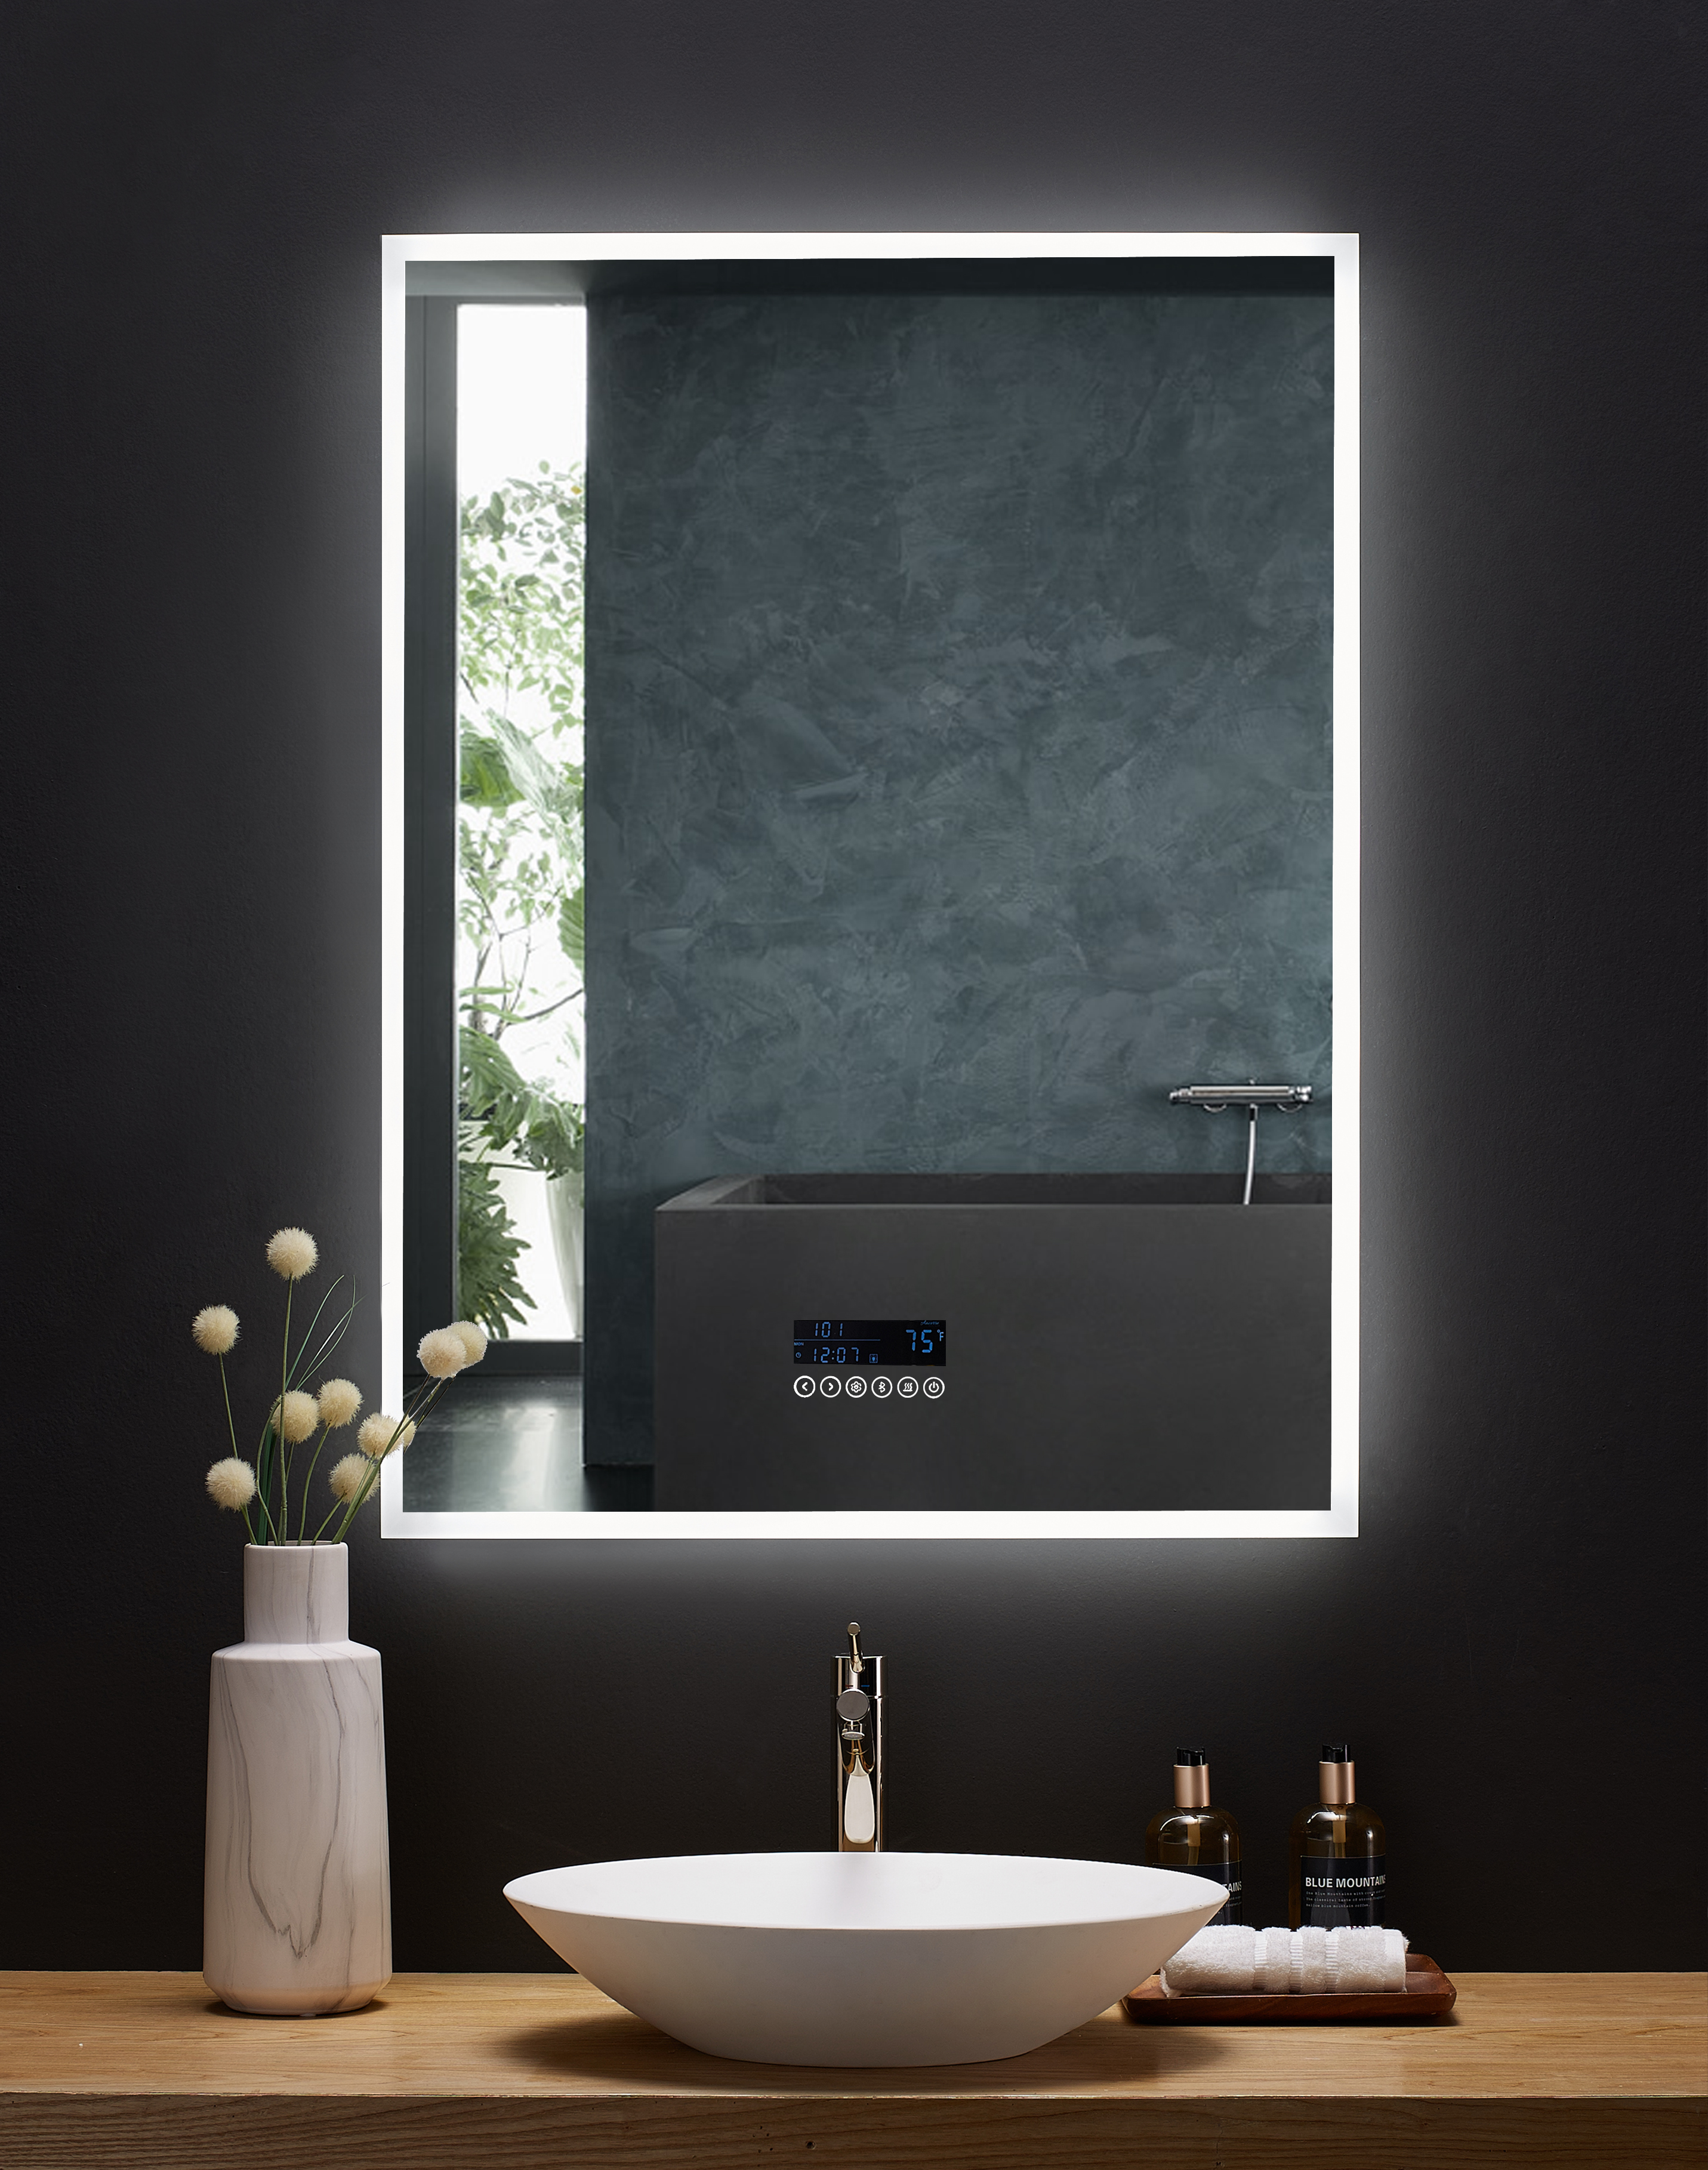 30 in. x 40 in. LED Frameless Mirror with Bluetooth, Defogger and Digital Display